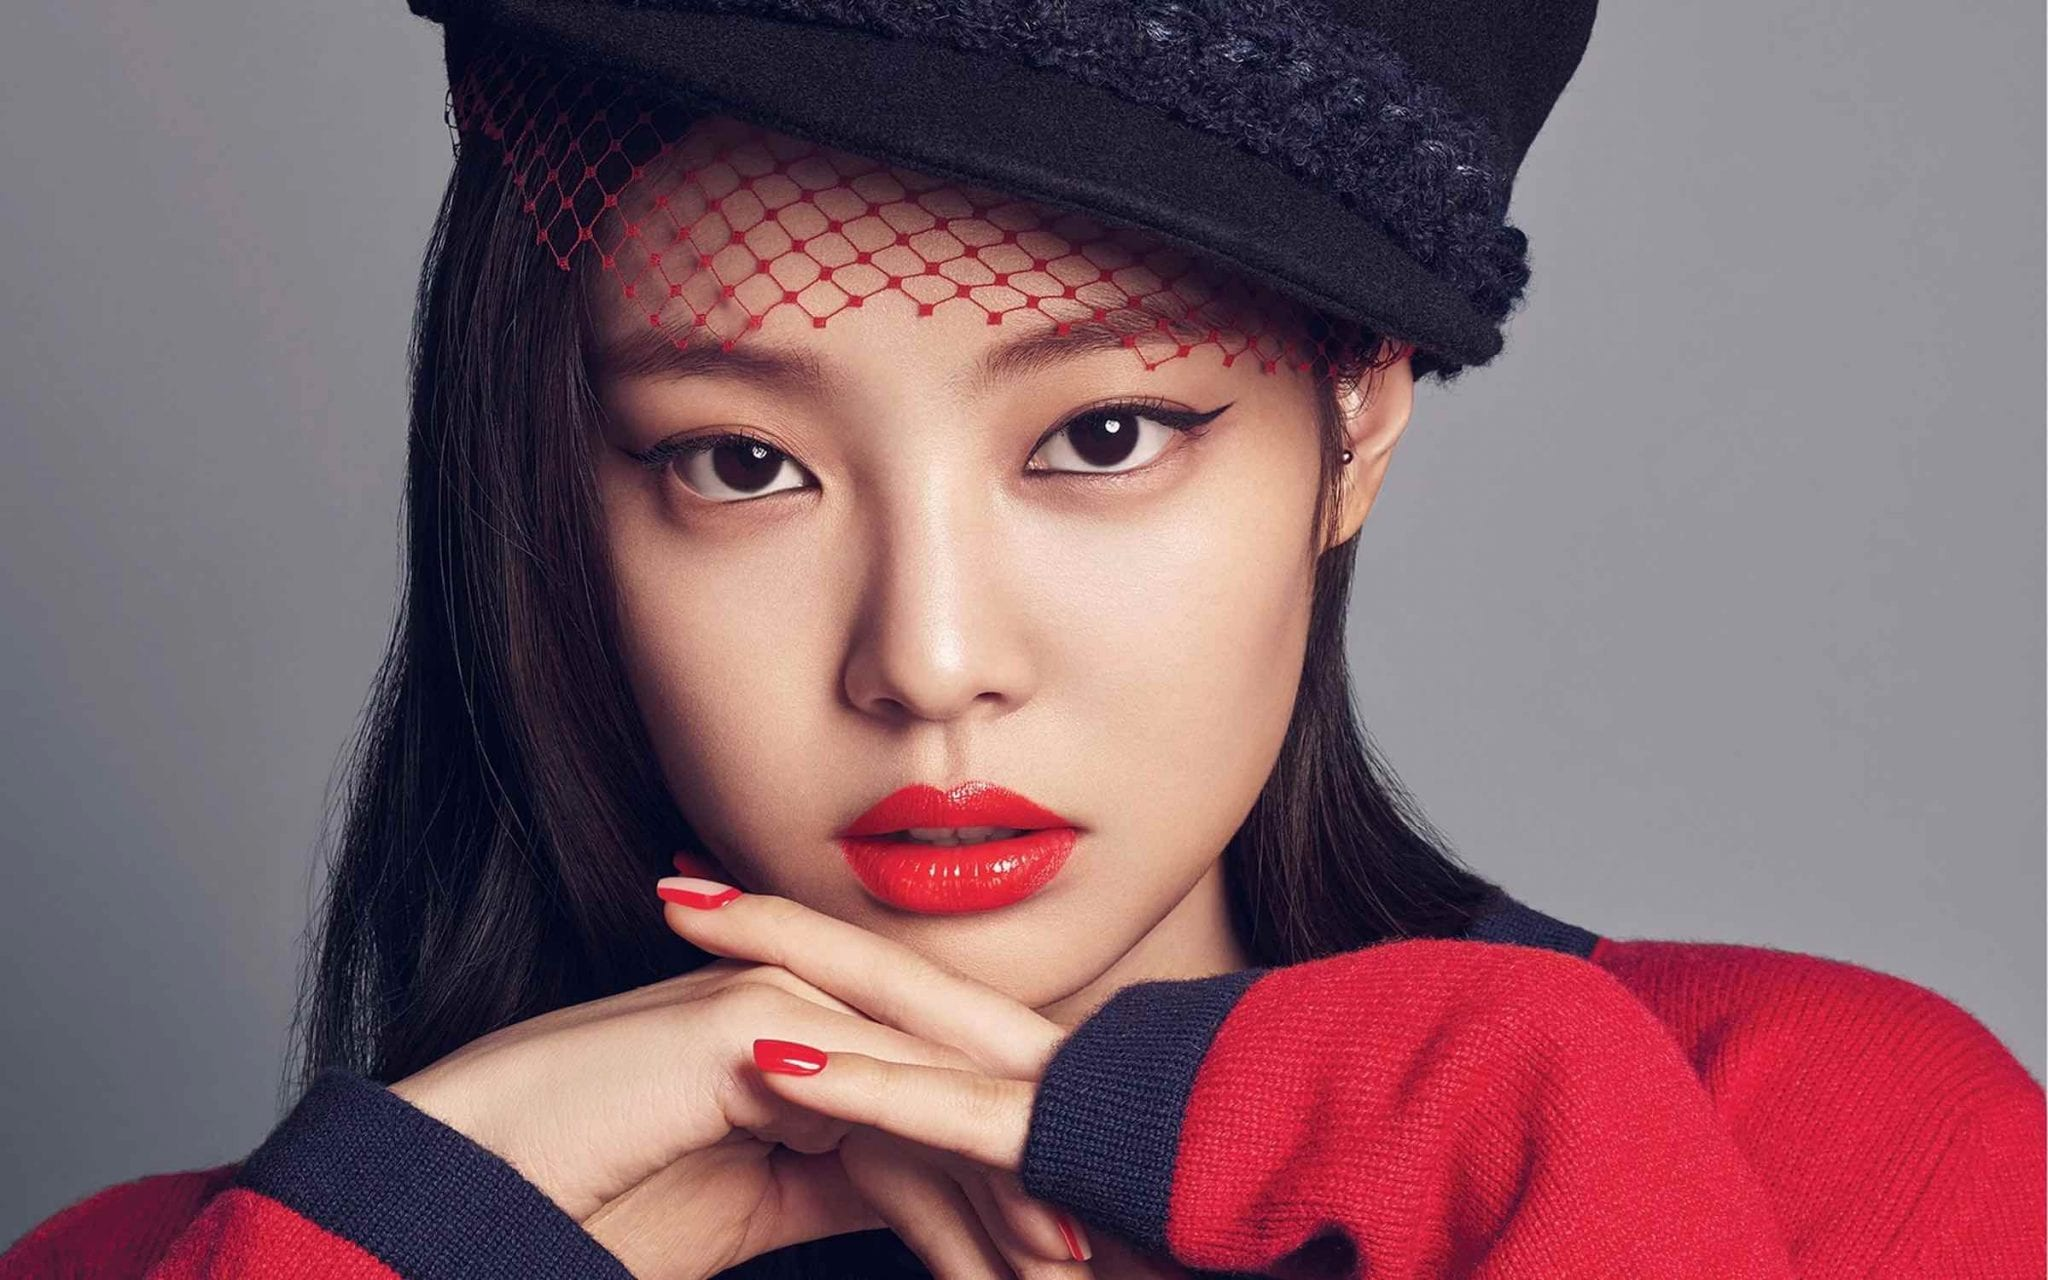 Who is the YG princess from Blackpink?